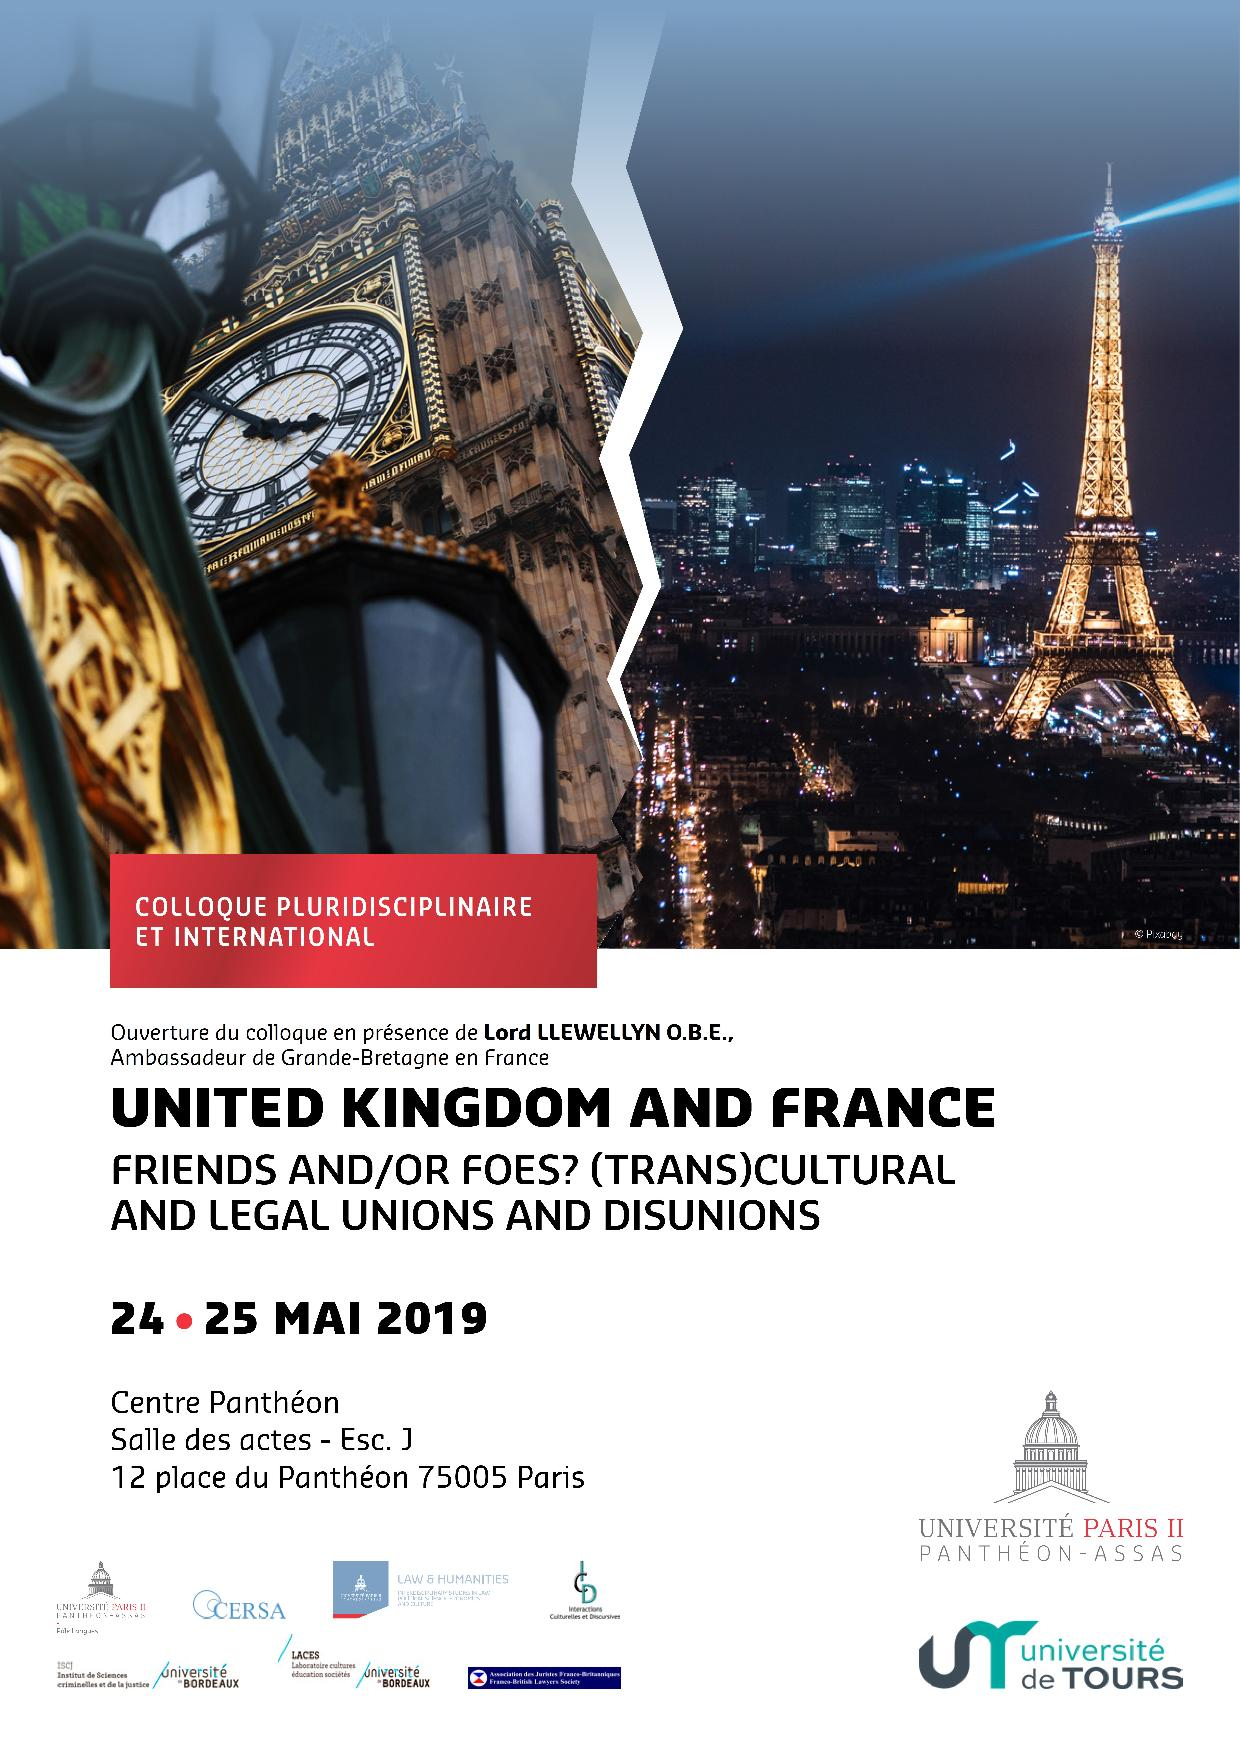 United Kingdom and France - Affiche